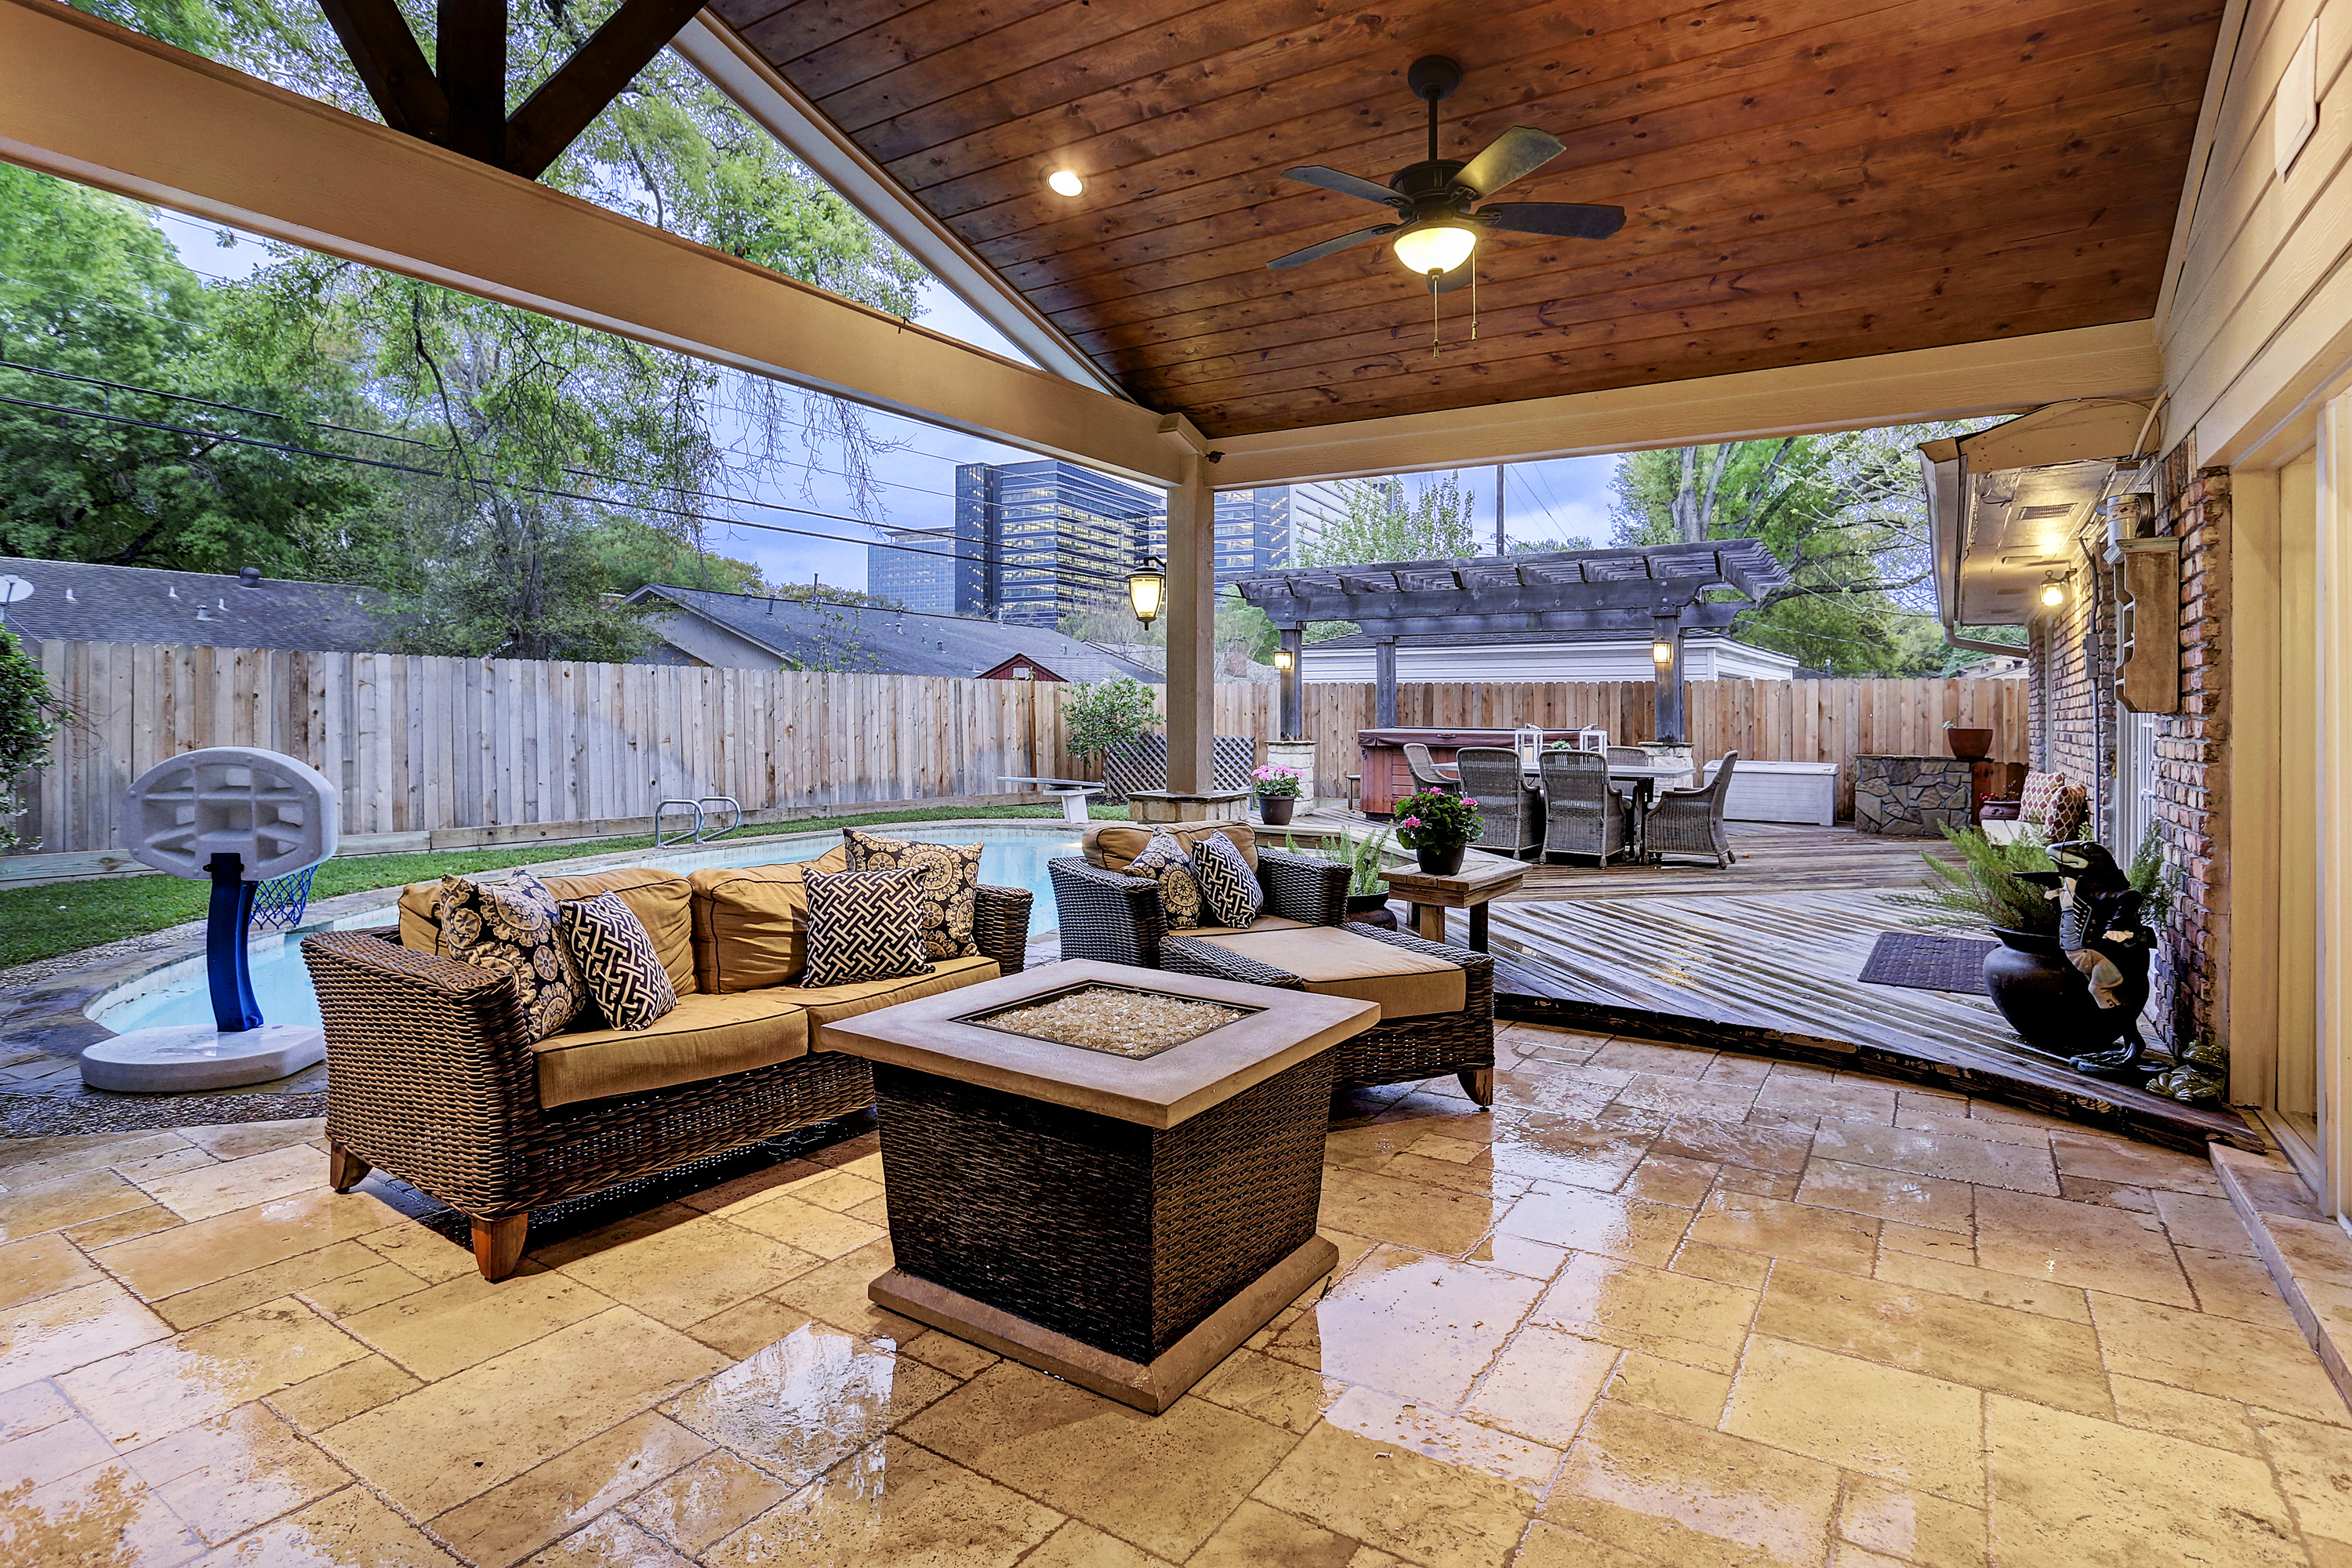 Outdoor Living Blog - Texas Custom Patios on Unique Outdoor Living id=78909